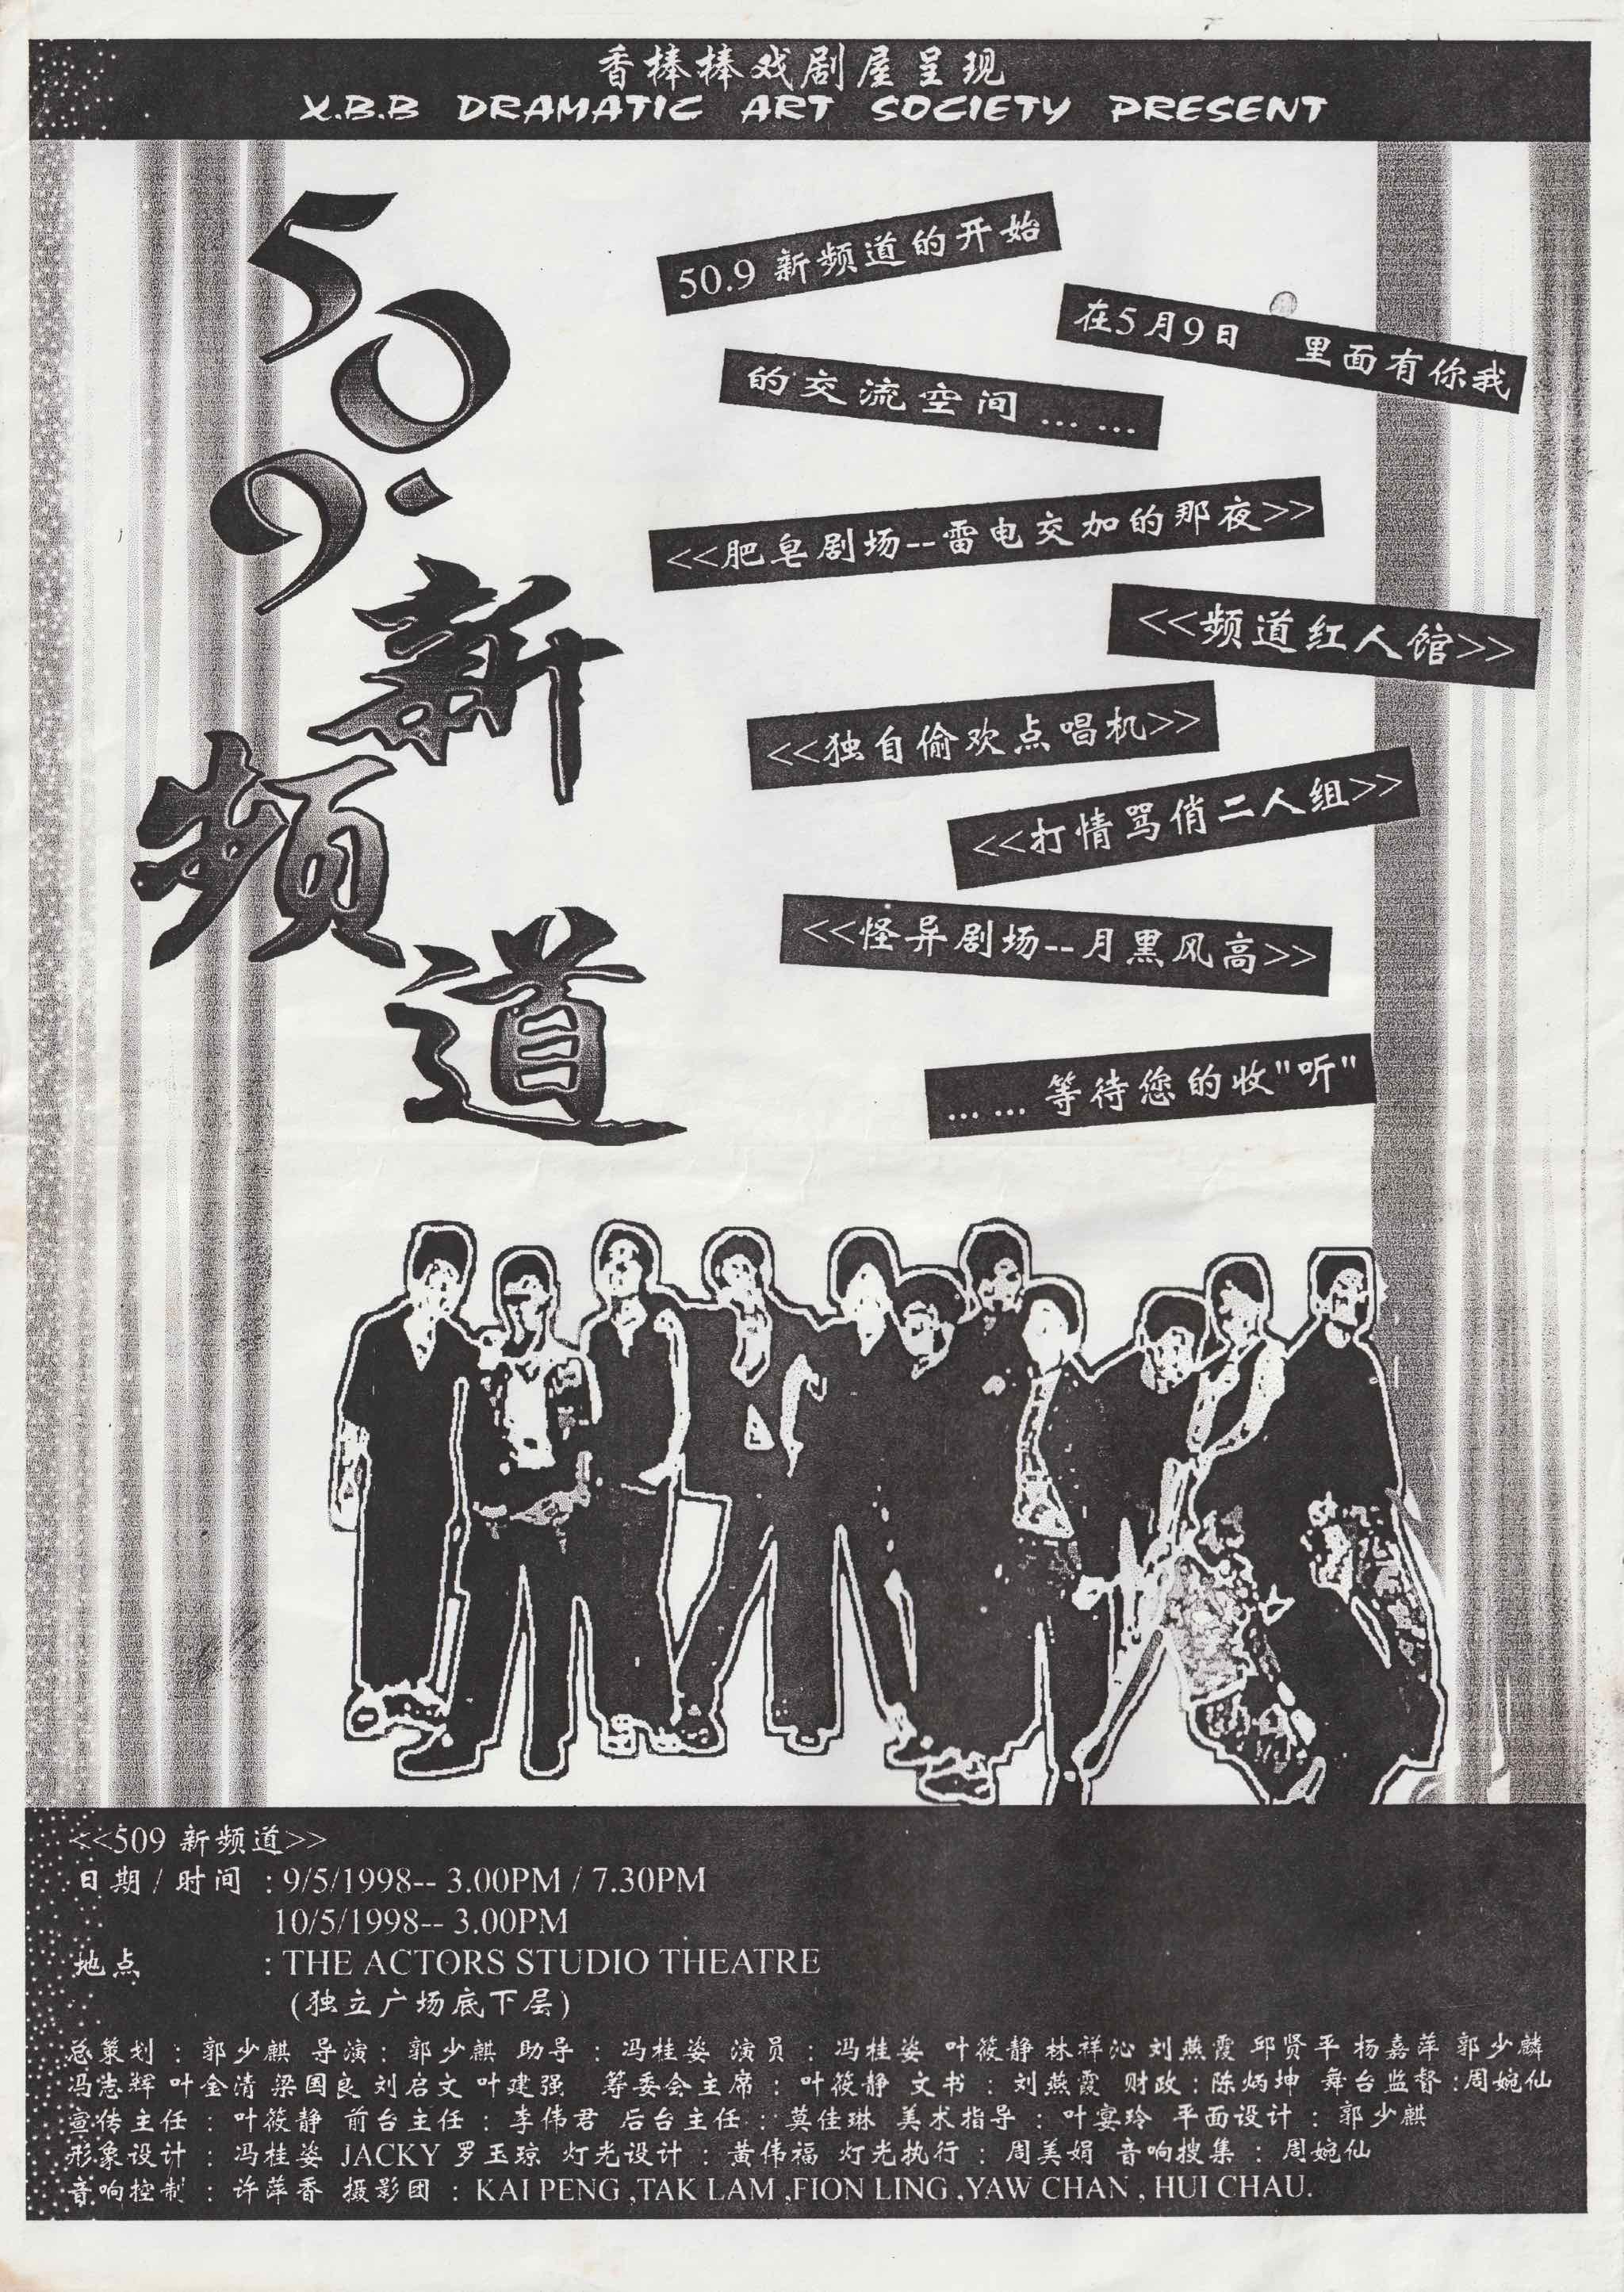 1998 New Channel 50.9 Poster